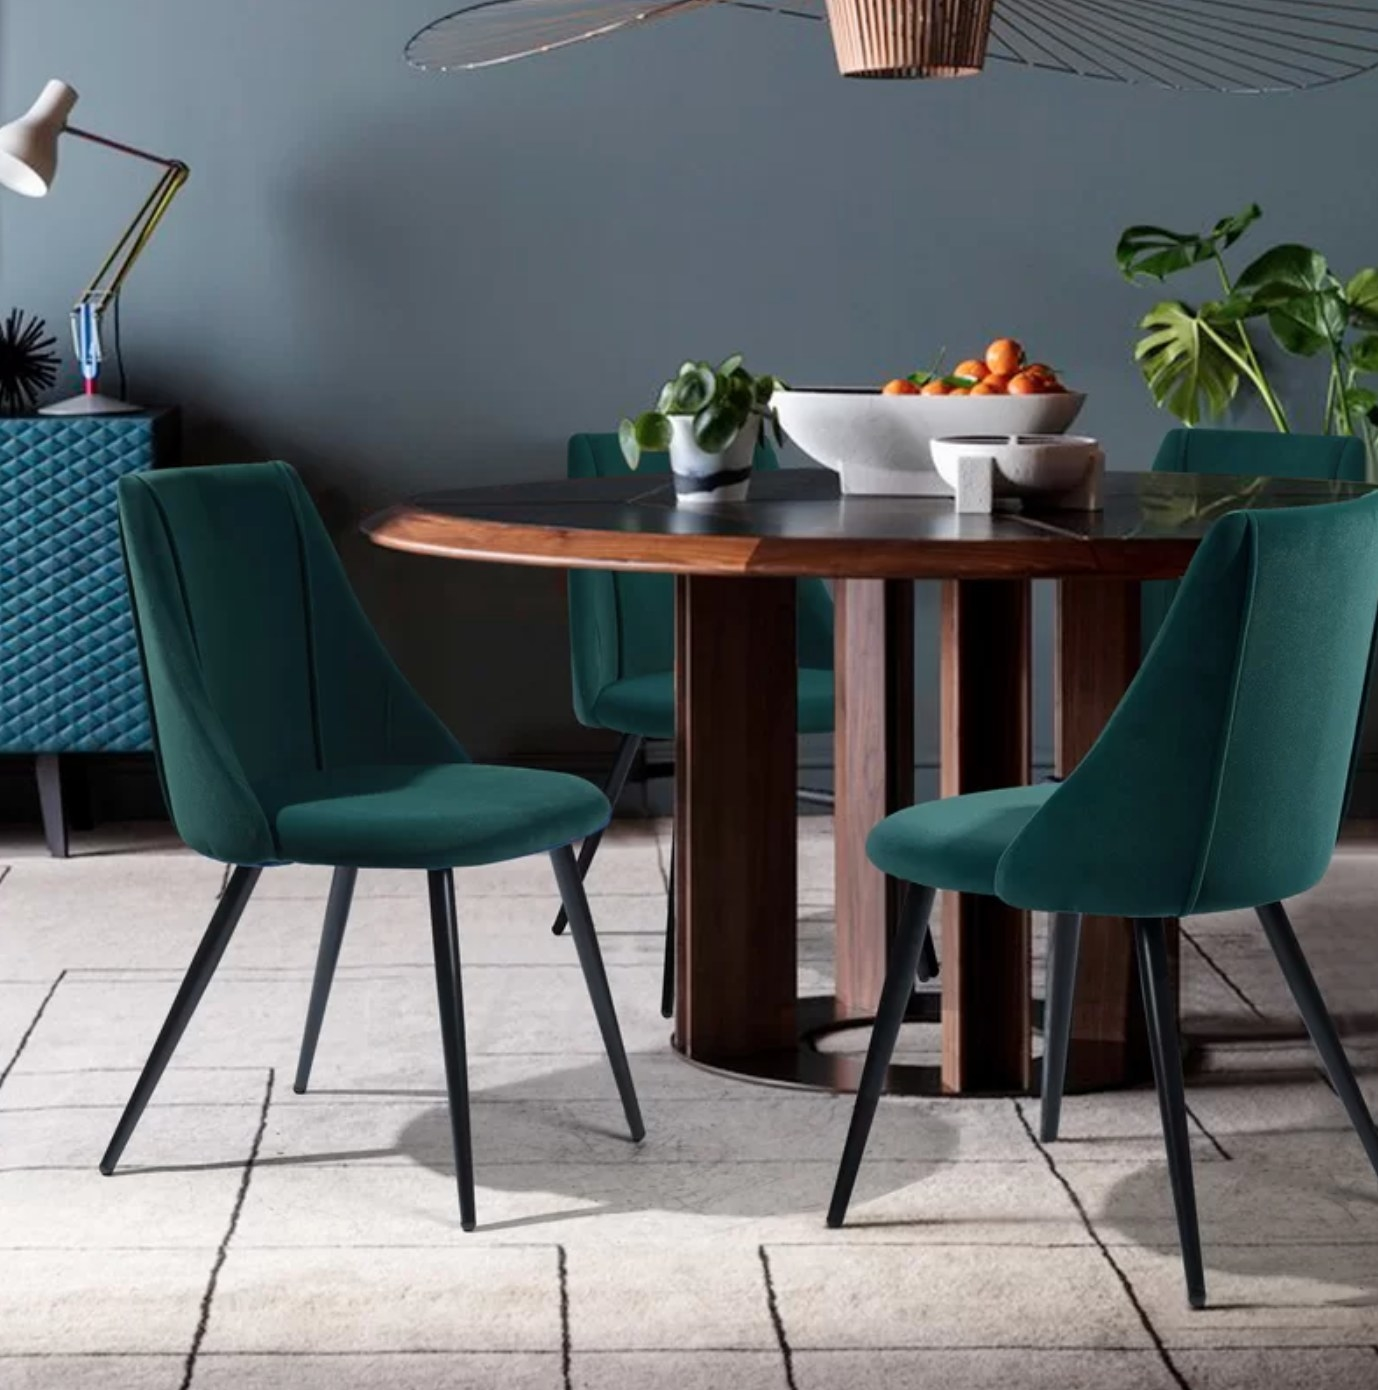 The set of two upholstered side chairs in green